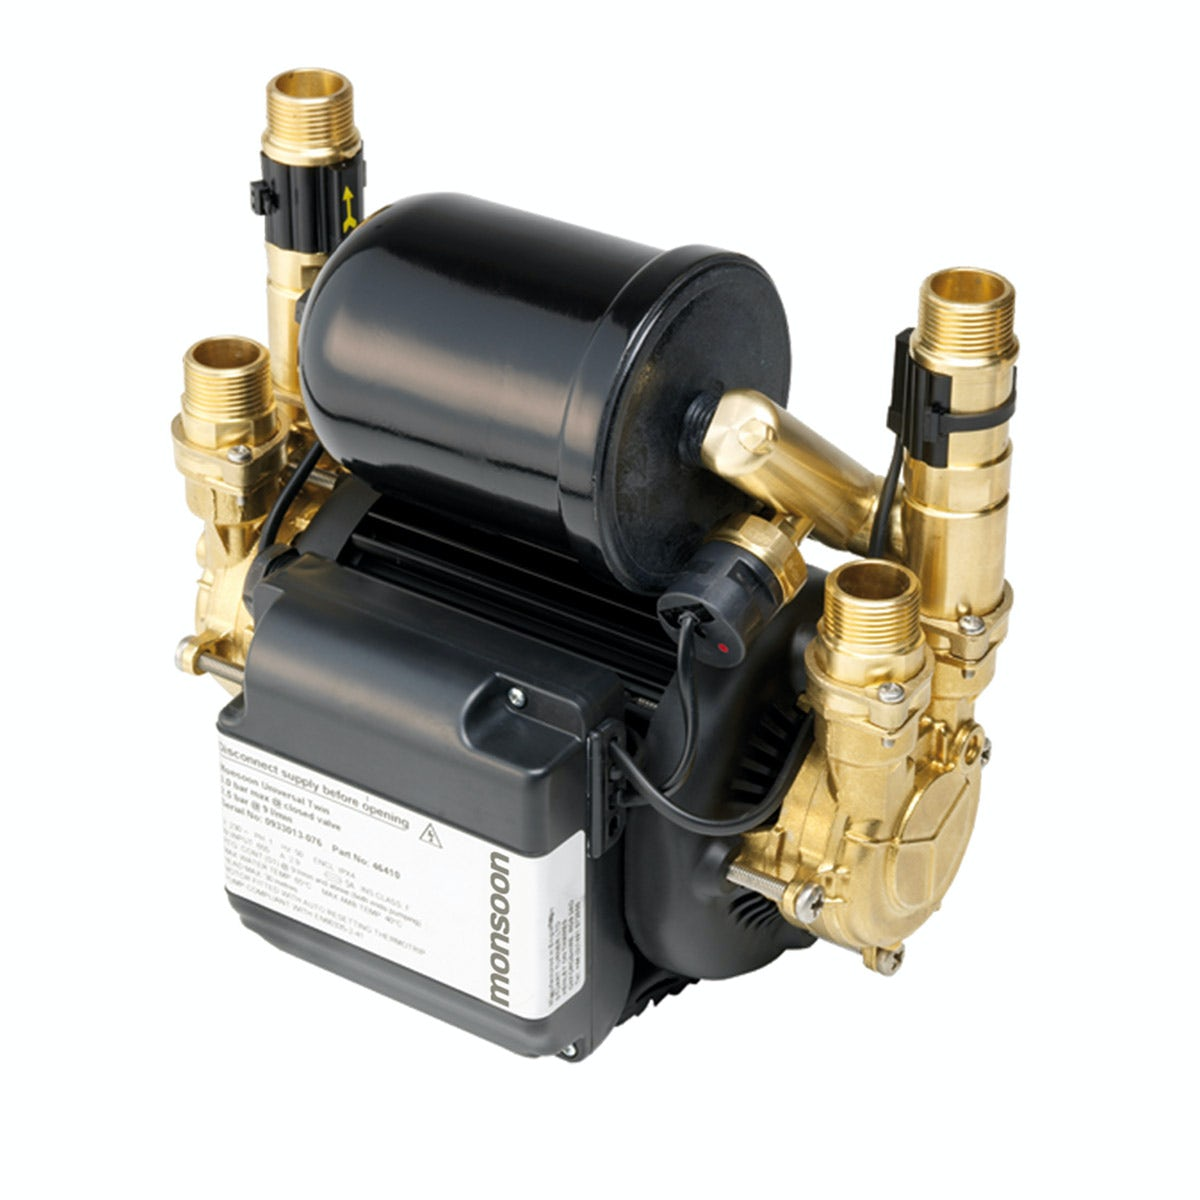 Stuart Turner Monsoon universal 2.0 bar twin shower pump